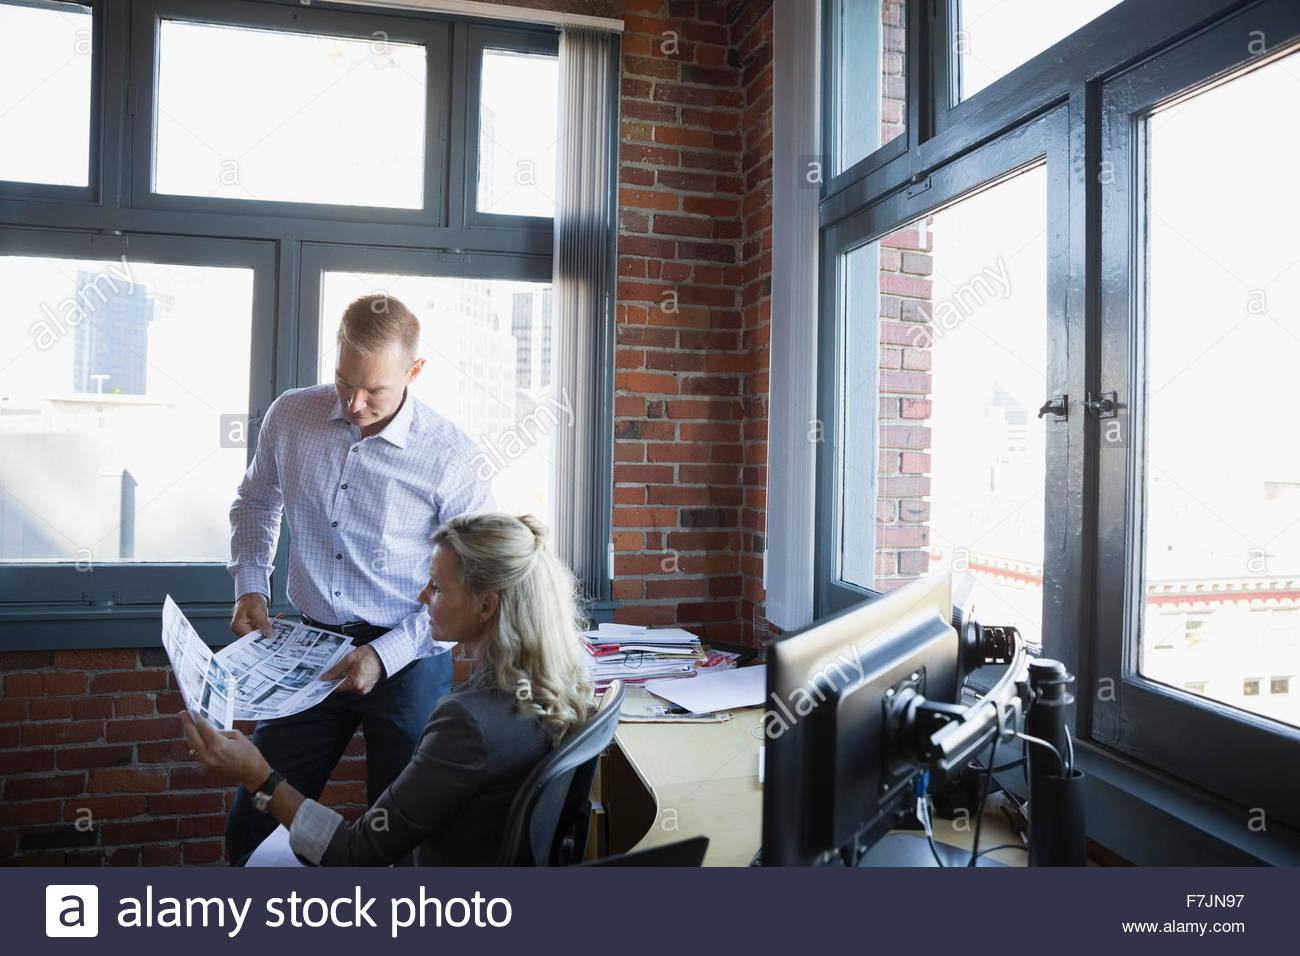 Business people reviewing proofs in office - Stock Image